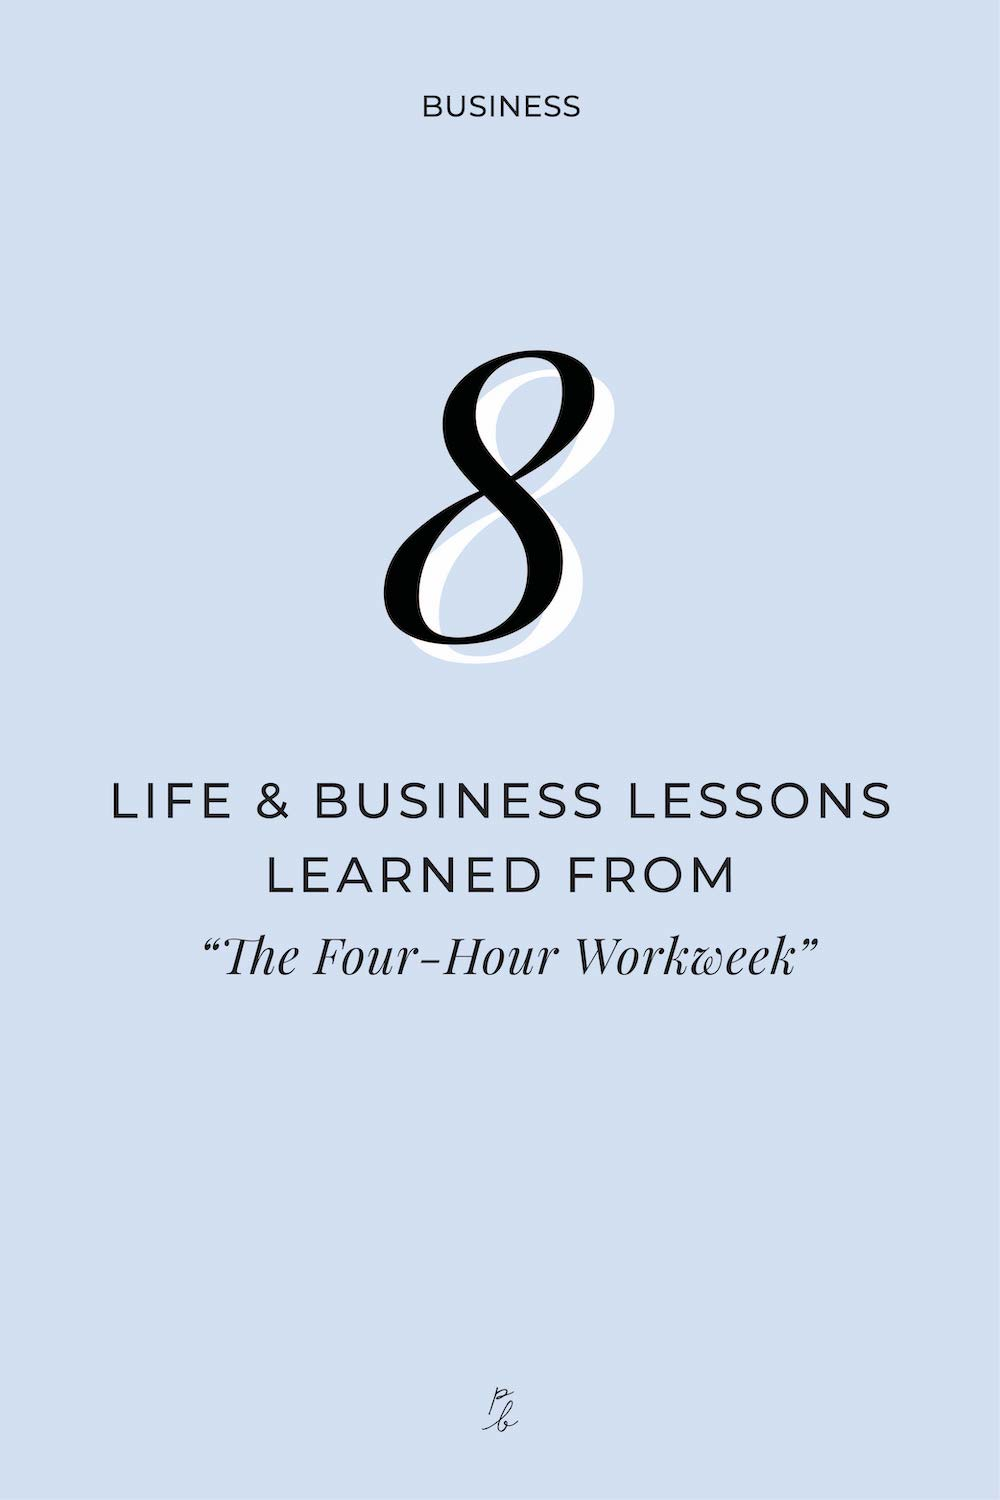 2-8 life and business lessons learned from the 4 hour workweek.jpg